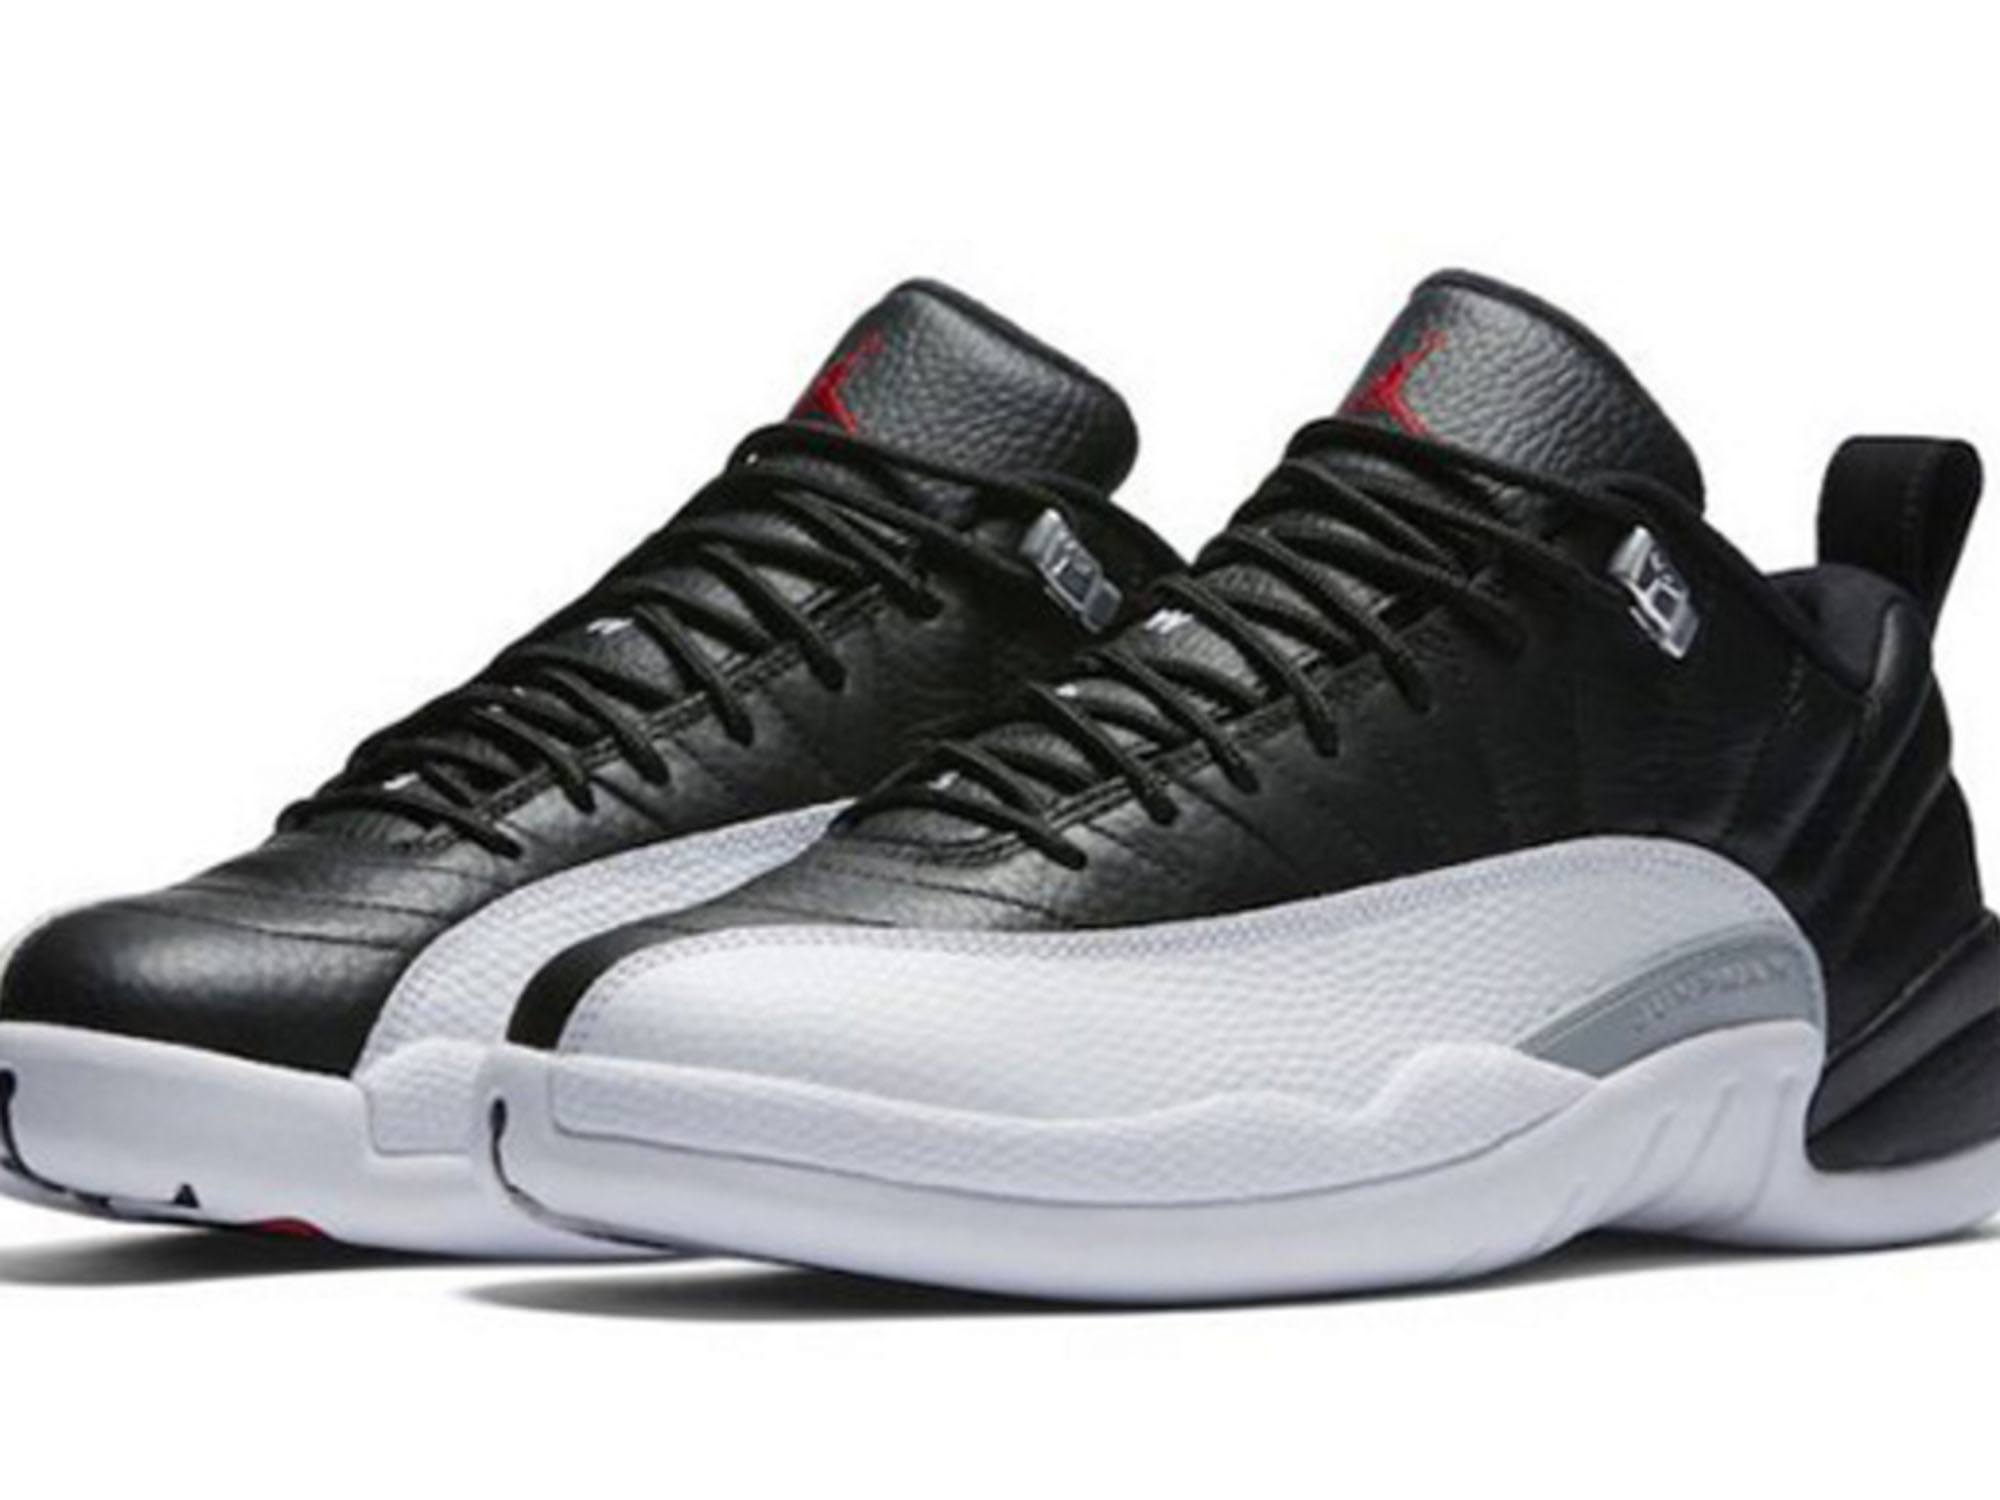 Jordan shoe release dates in Australia